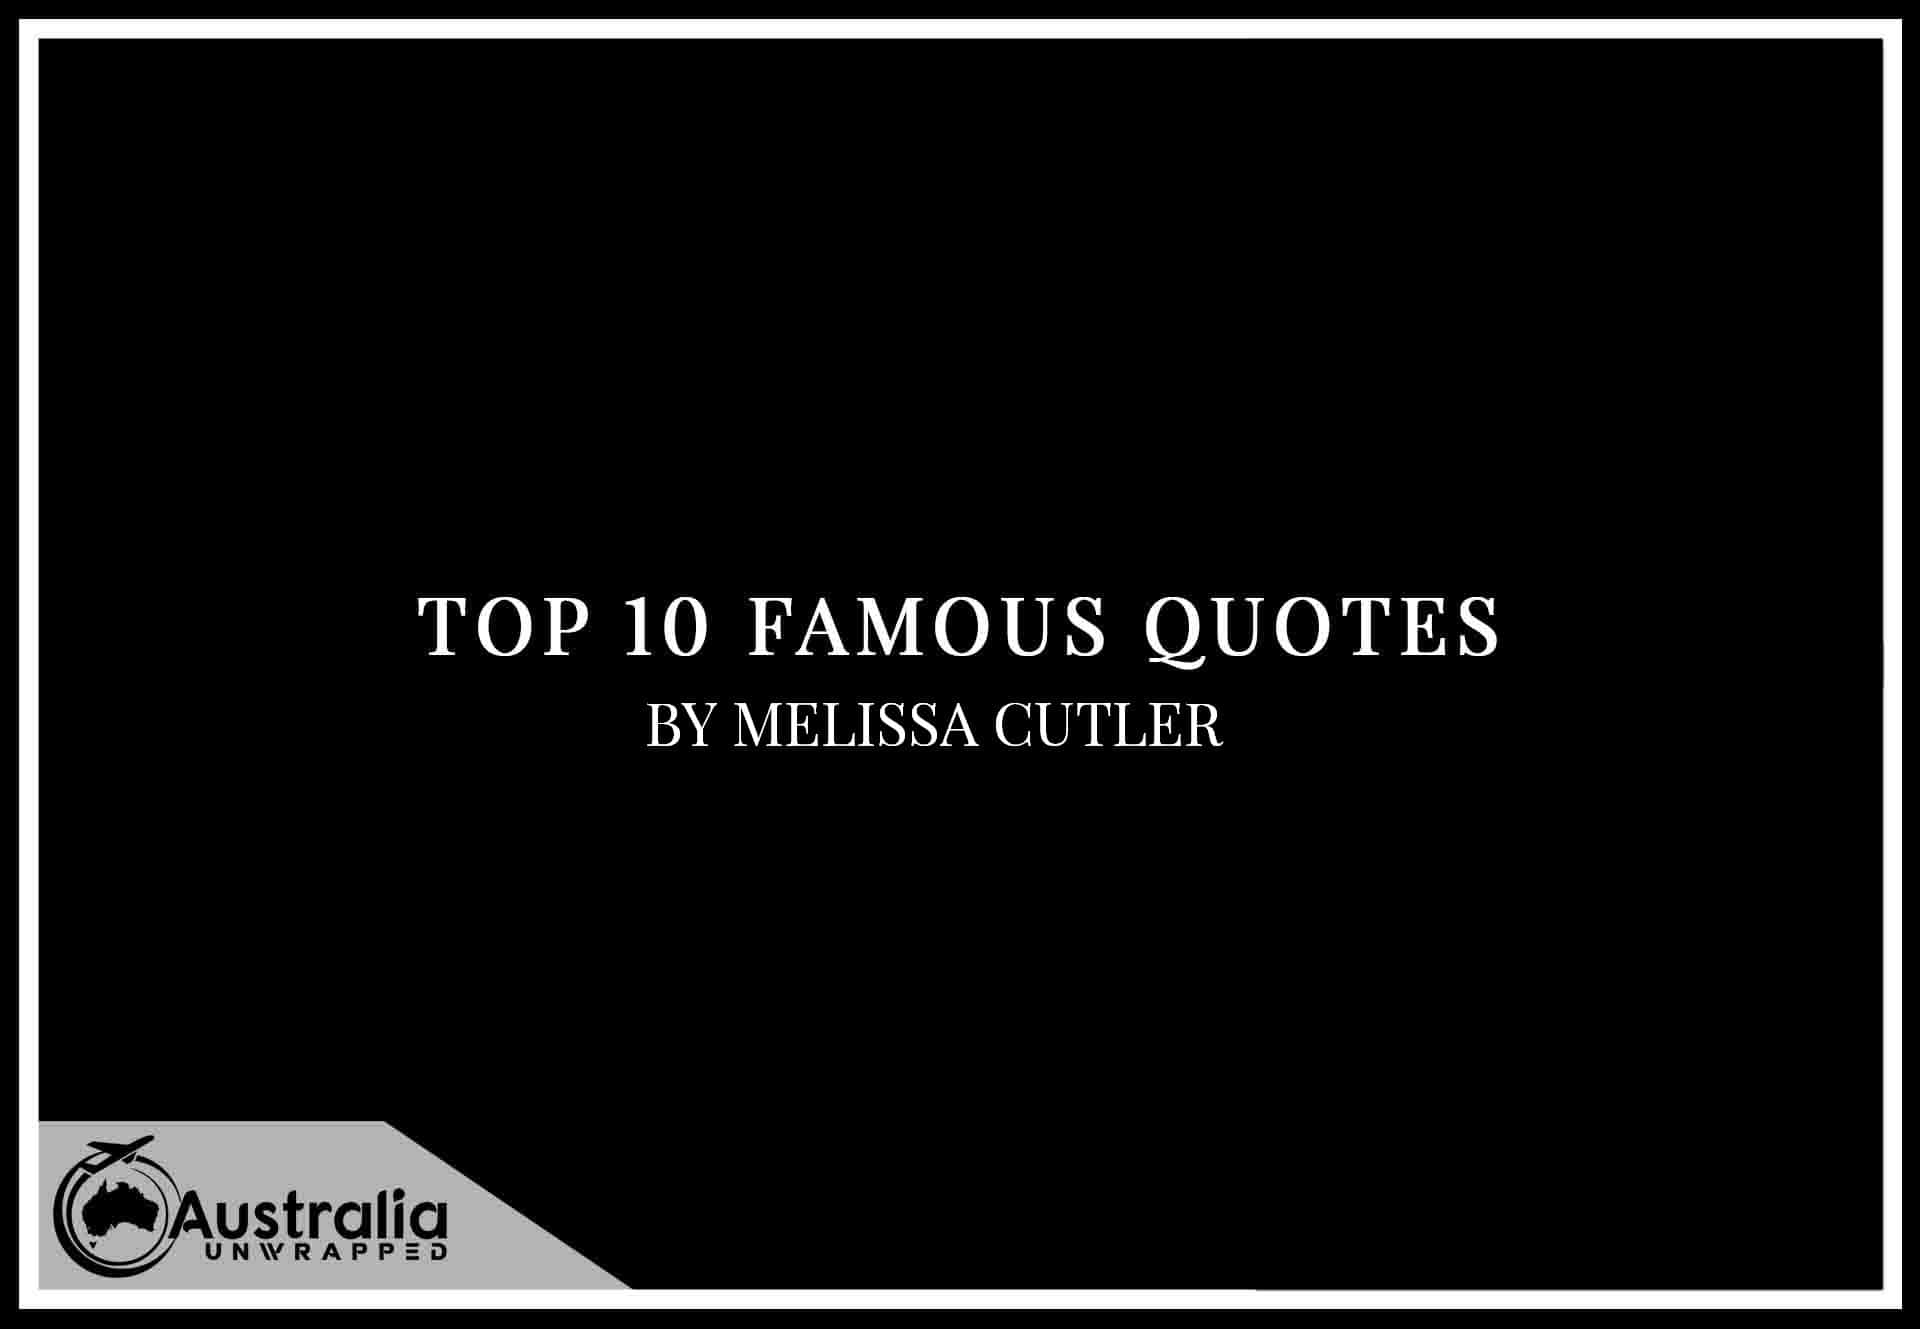 Top 10 Famous Quotes by Author Melissa Cutler